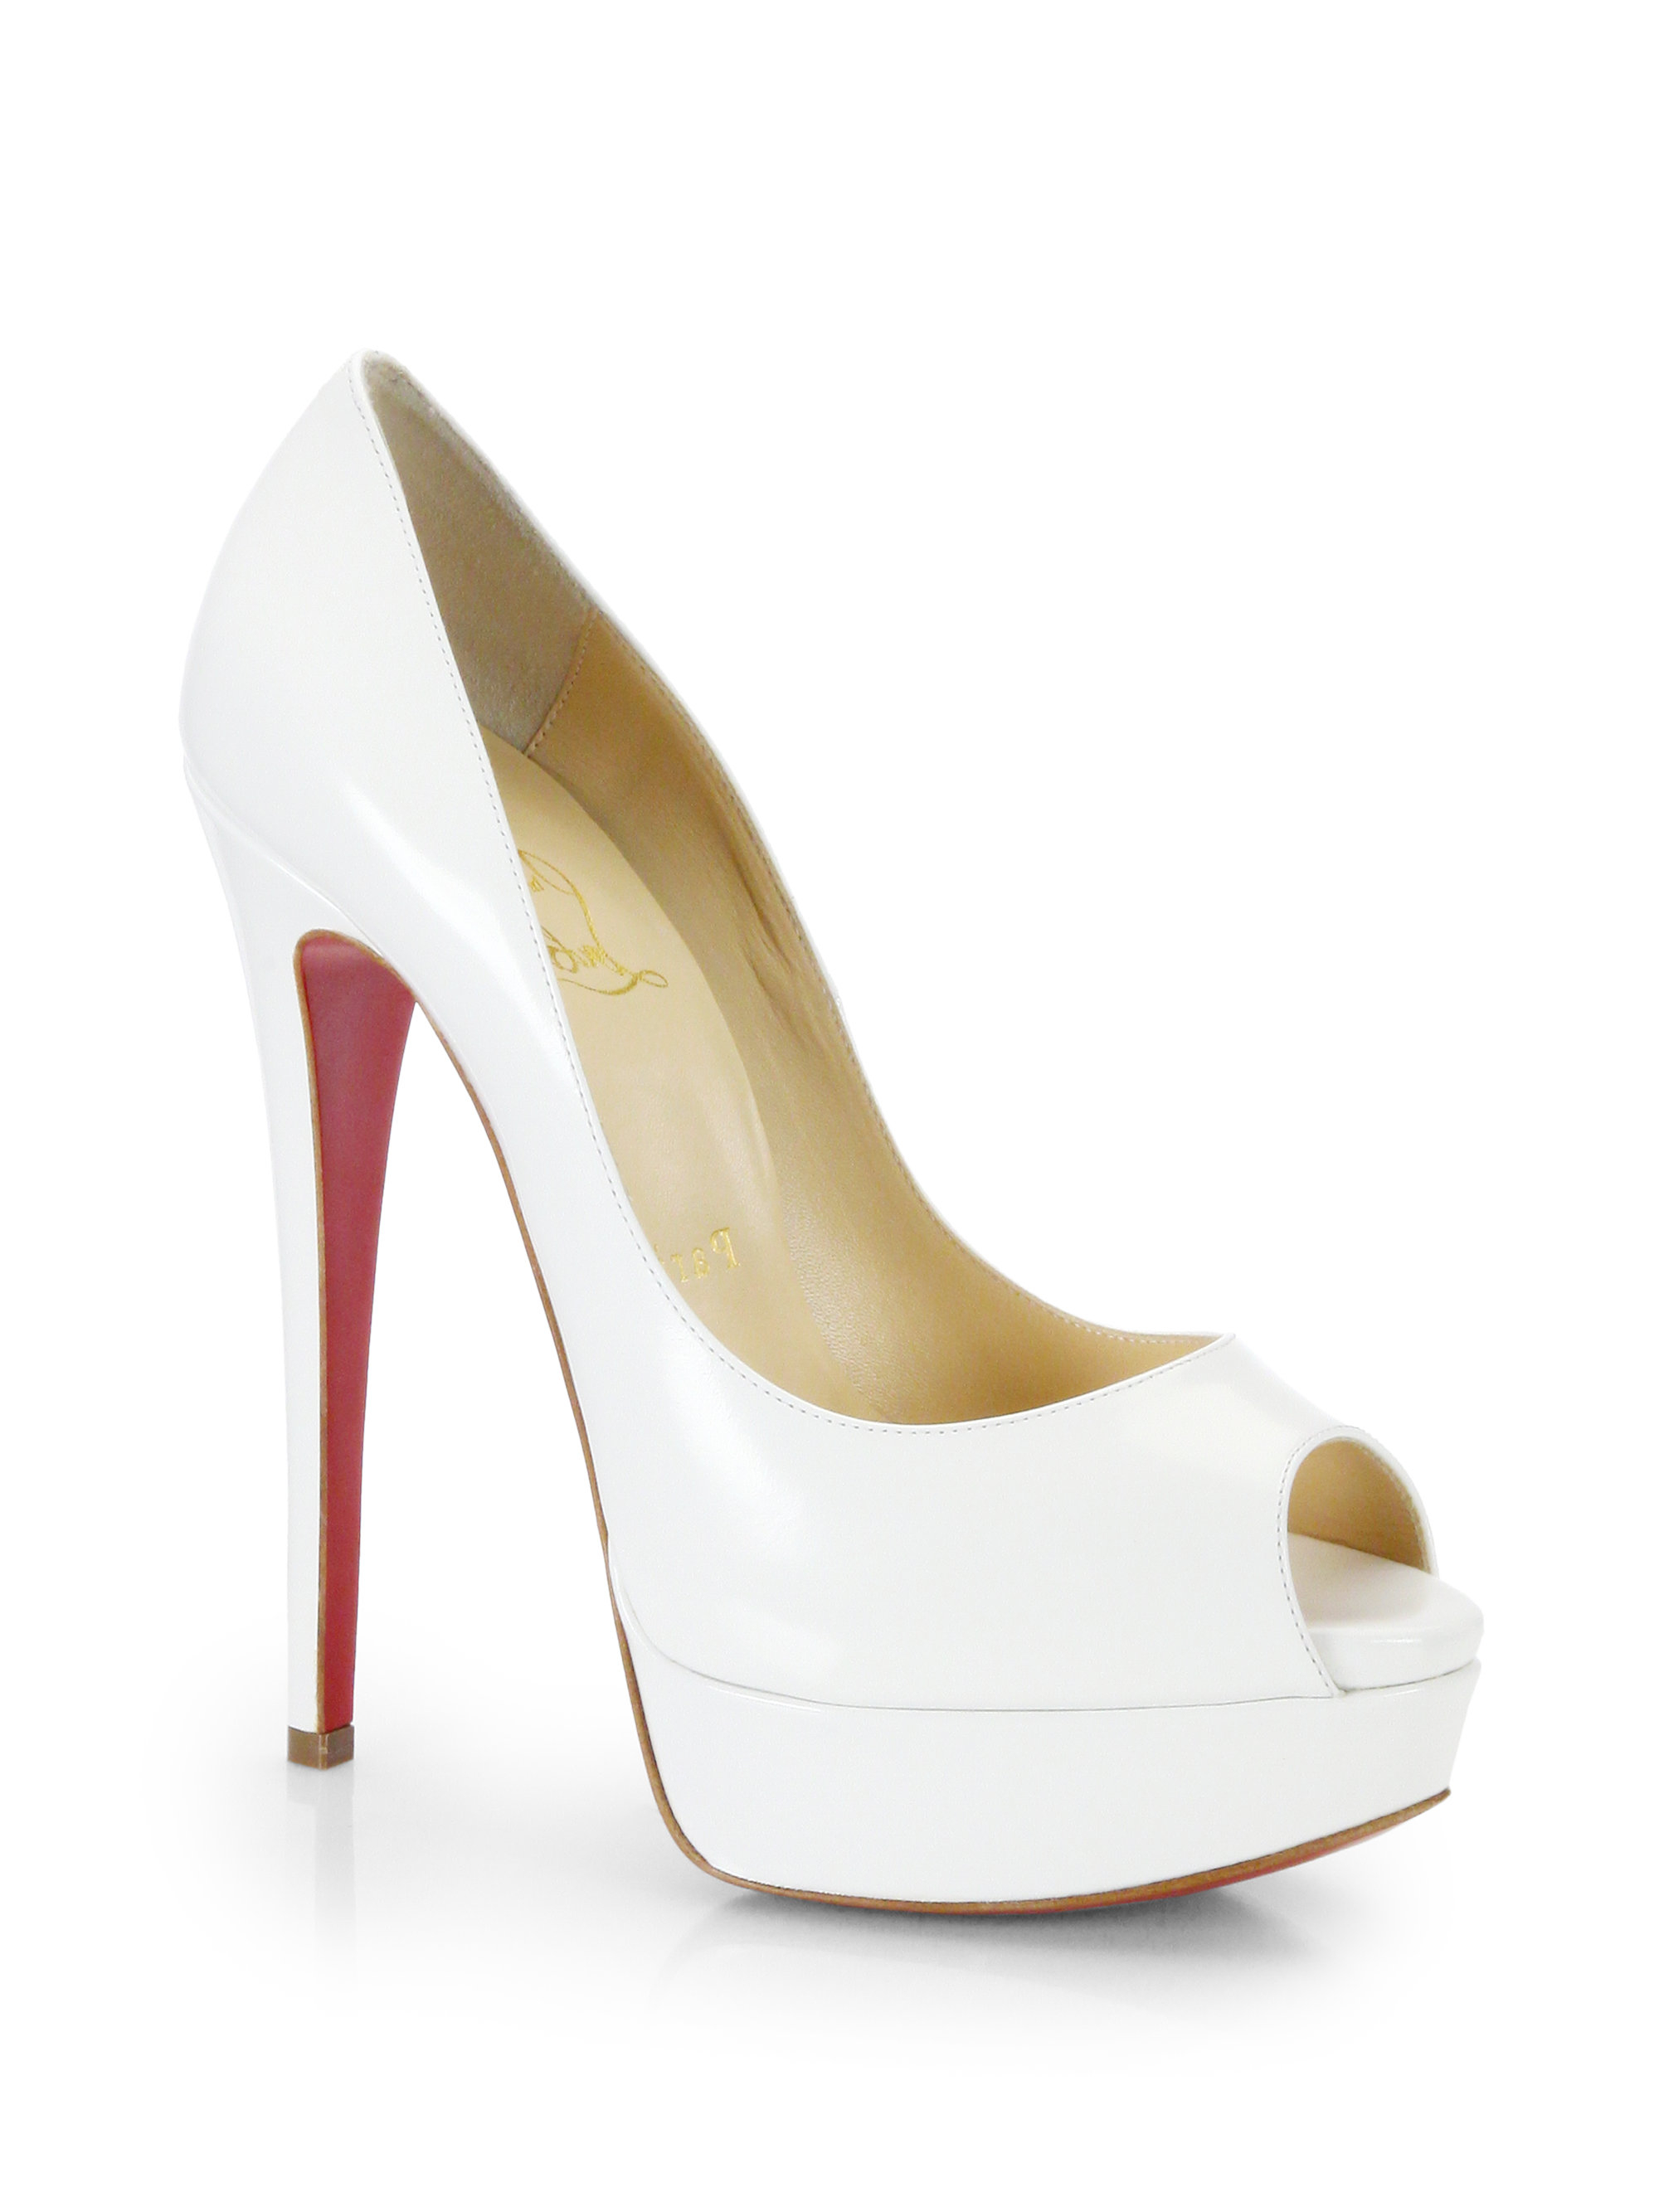 675f89b85fc3 Lyst - Christian Louboutin Lady Peep Leather Pumps in White